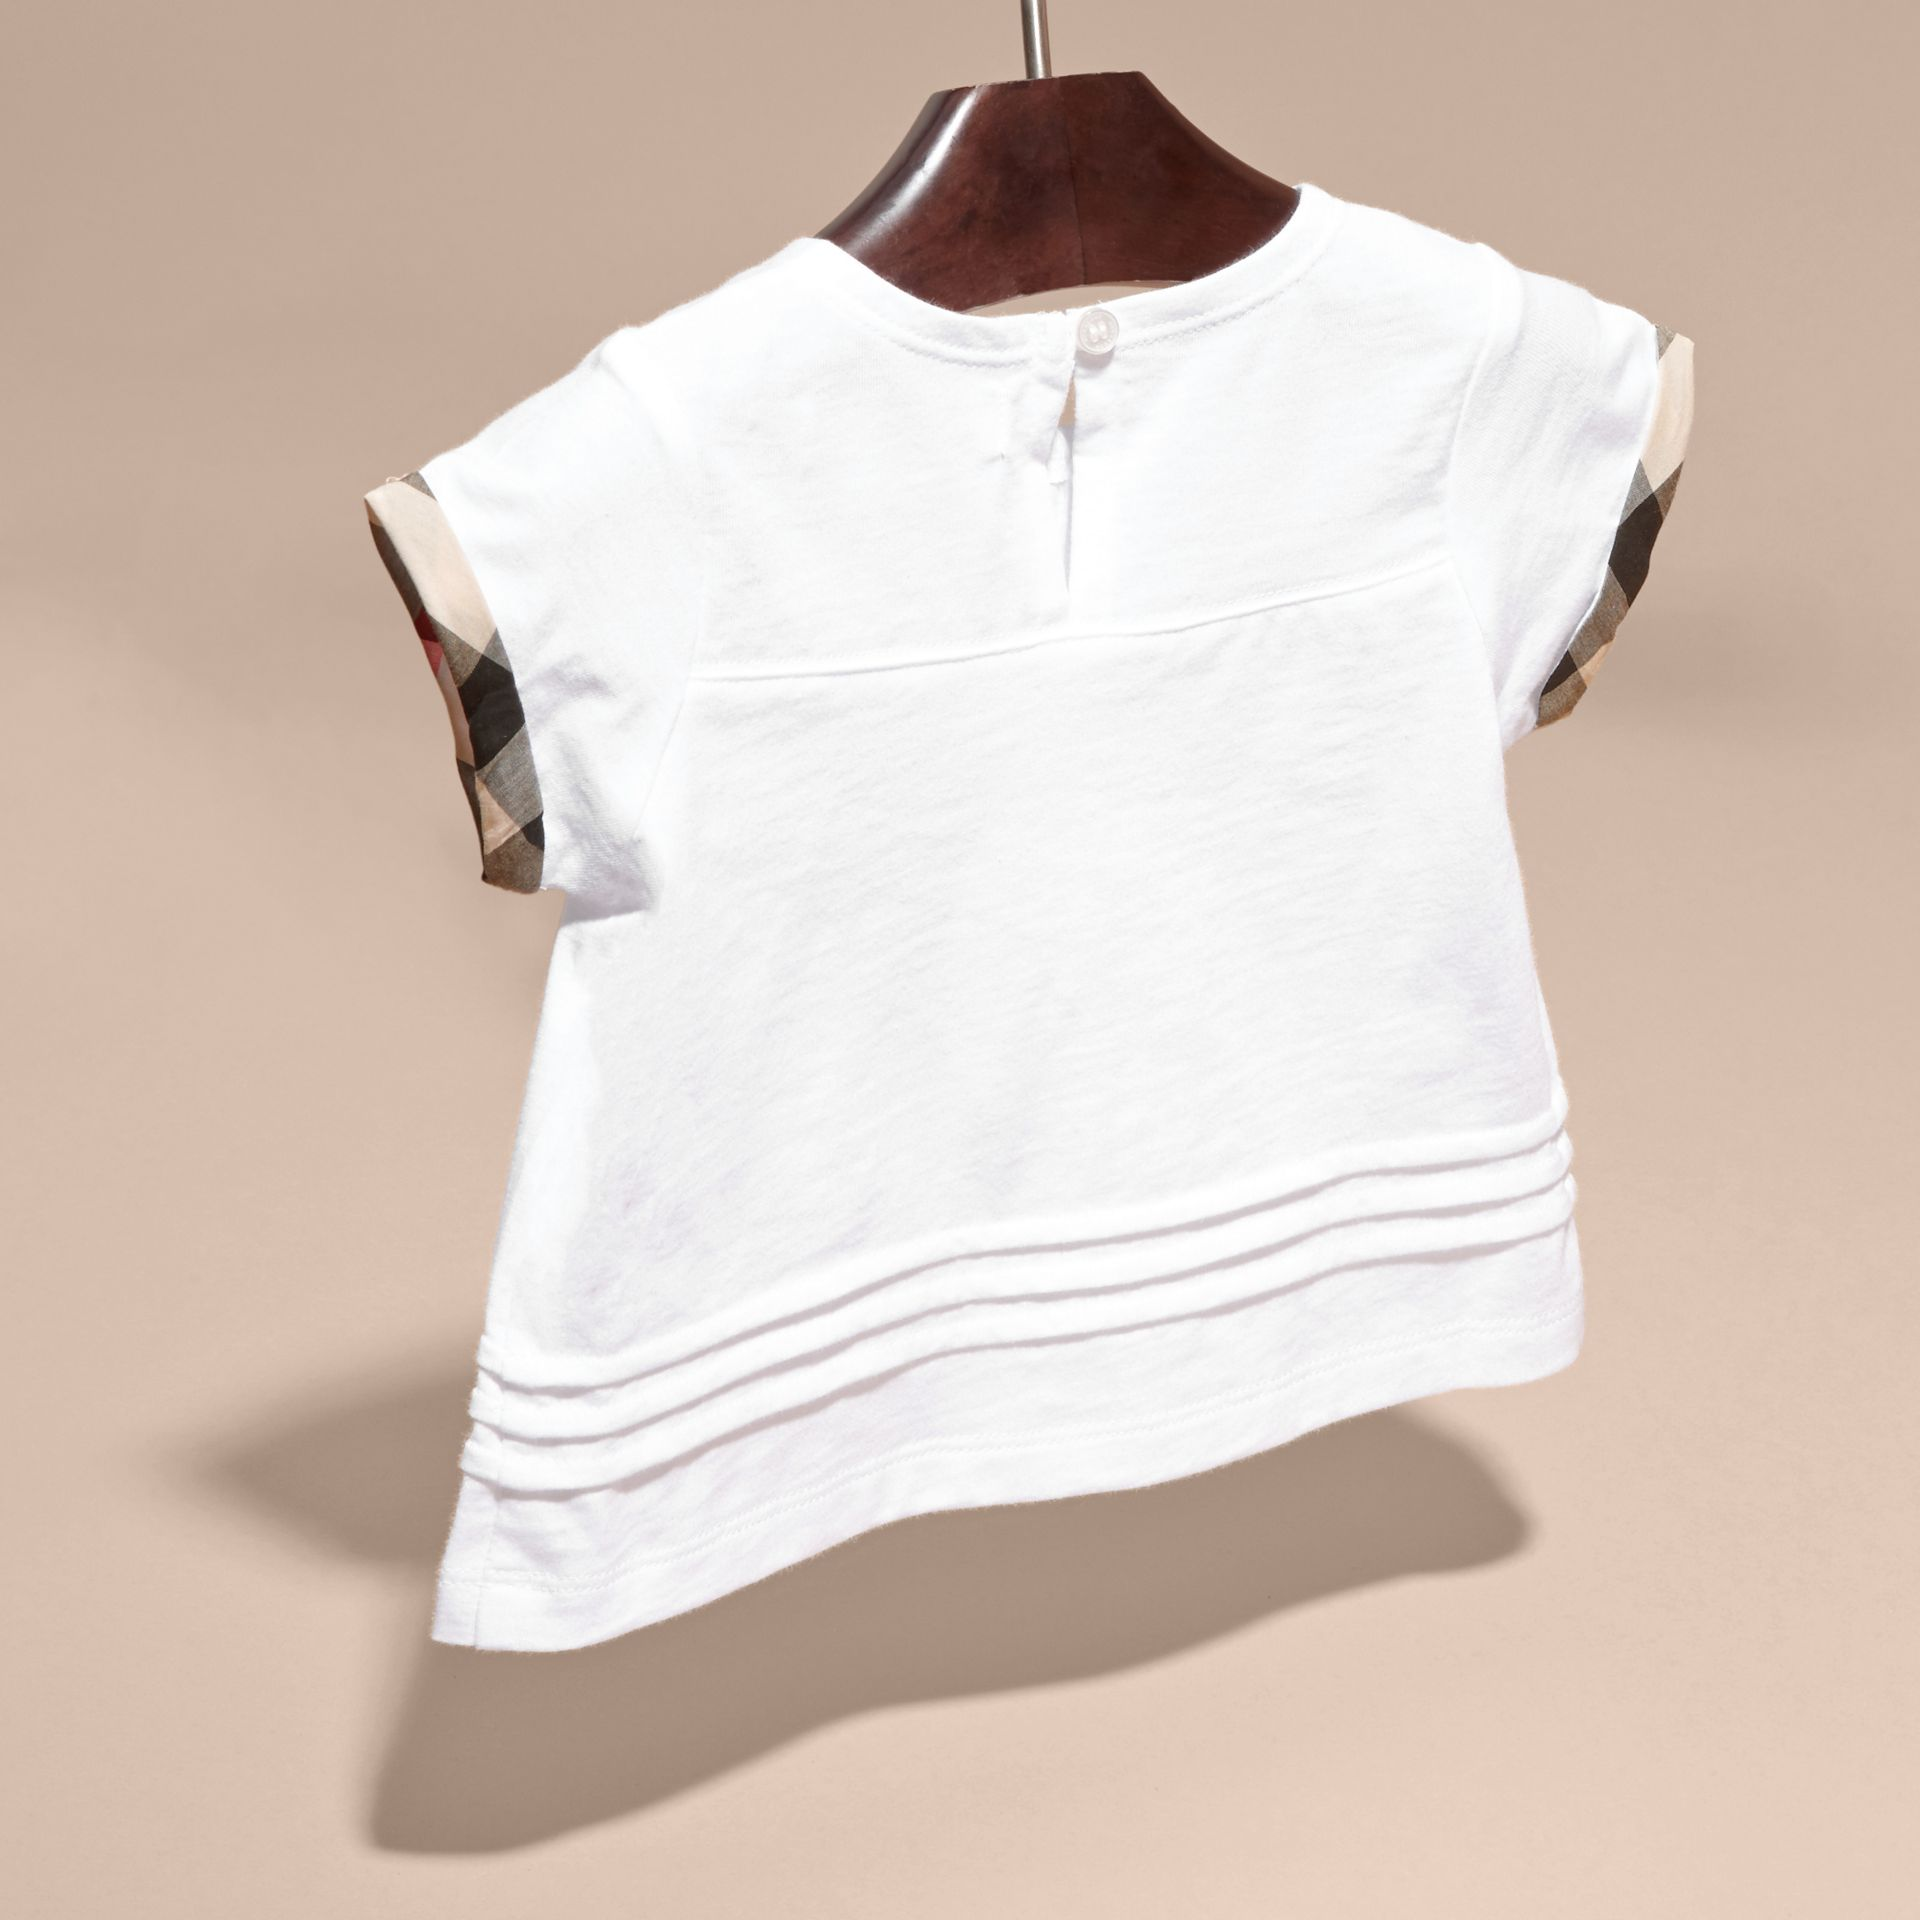 Pleat and Check Detail Cotton T-shirt in White | Burberry Australia - gallery image 4